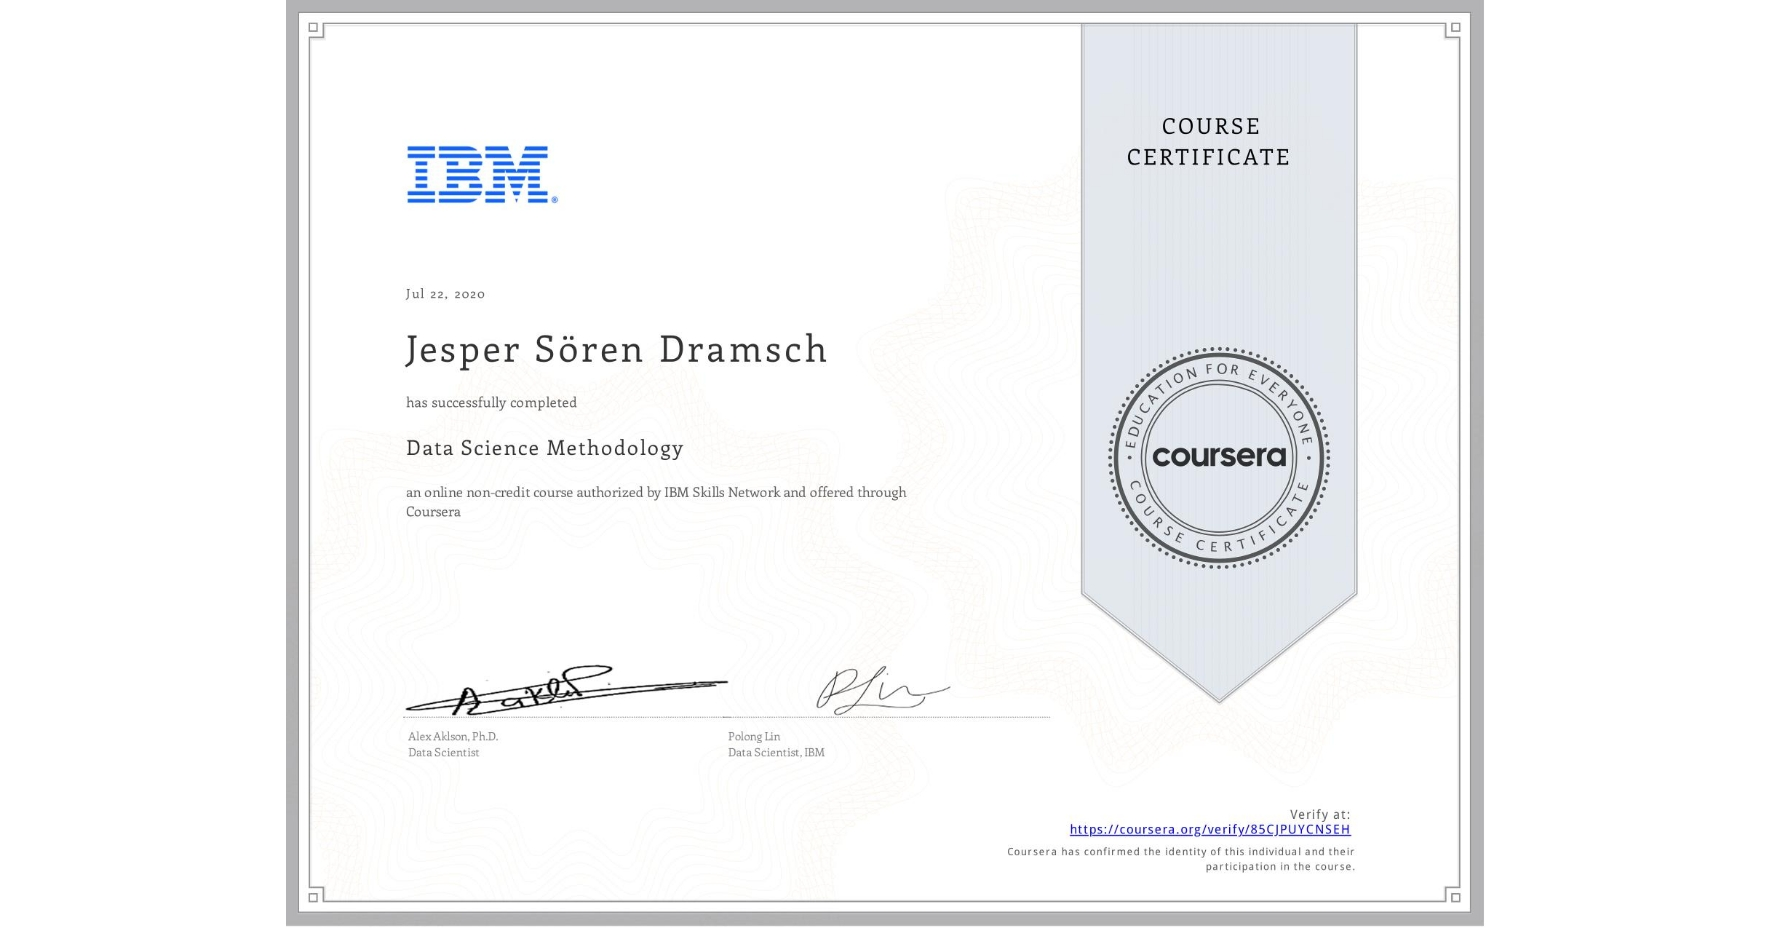 View certificate for Jesper Sören Dramsch, Data Science Methodology, an online non-credit course authorized by IBM and offered through Coursera